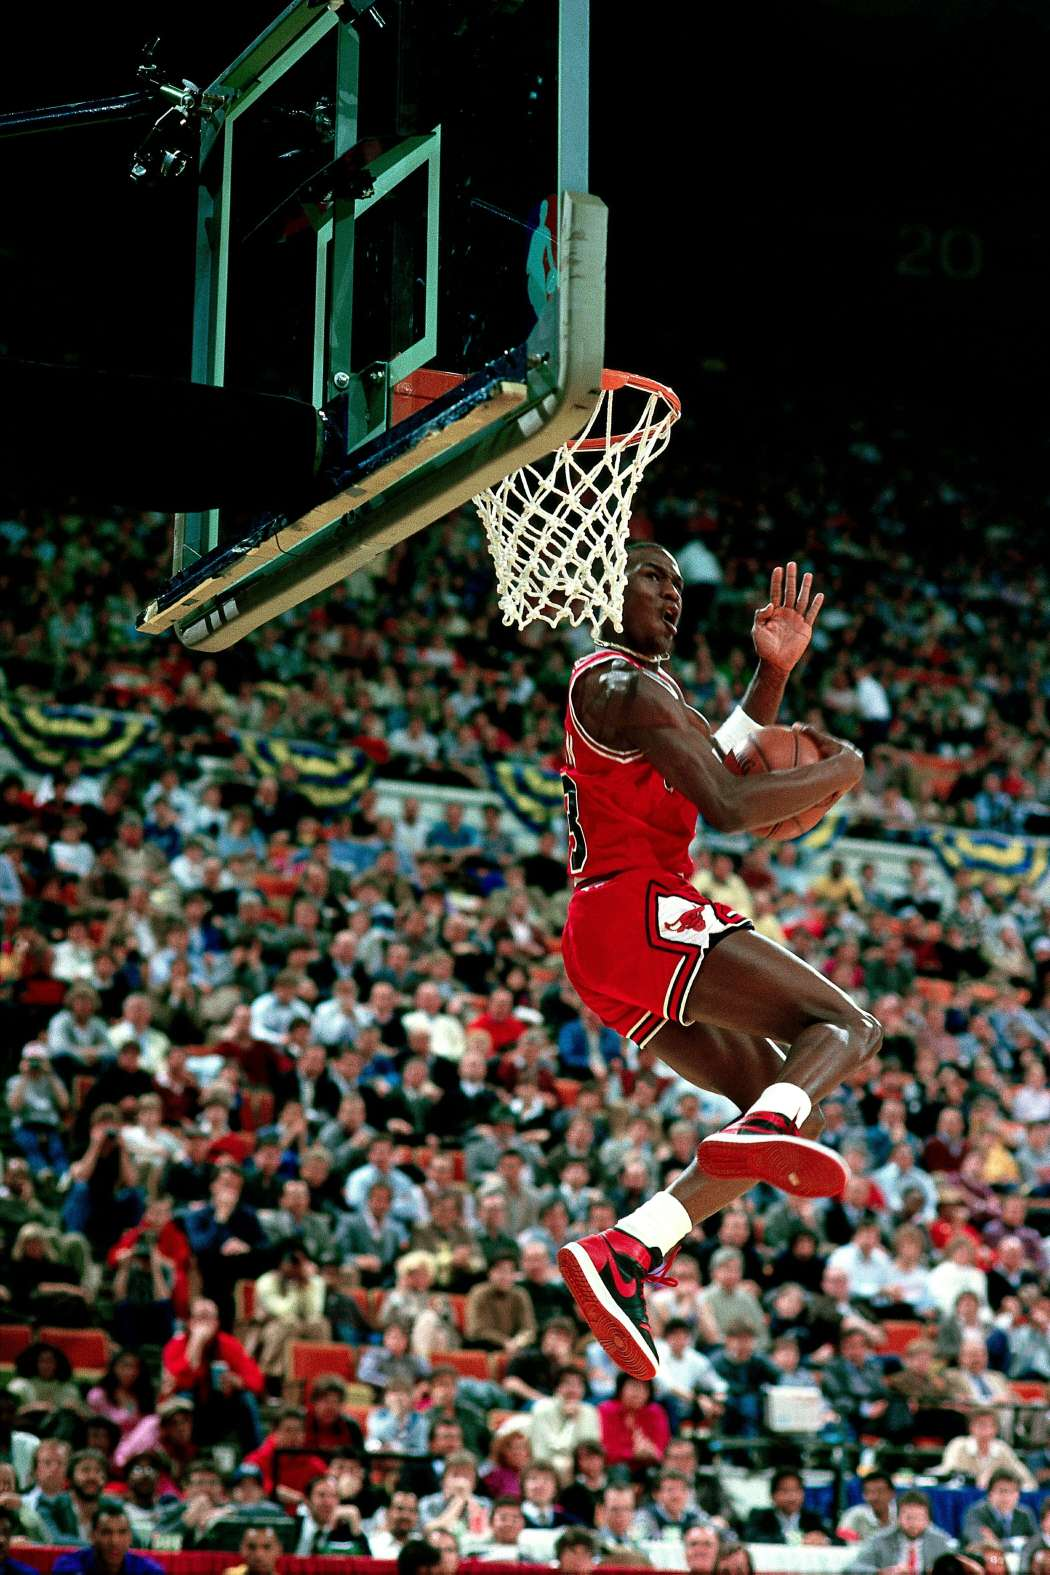 INDIANAPOLIS - FEBRUARY 10: Michael Jordan #23 of the Chicago Bulls goes for a dunk during the 1985 NBA All Star Slam Dunk Competition at the Hoosier Dome on February 10, 1985 in Indianapolis, Indiana. NOTE TO USER: User expressly acknowledges and agrees that, by downloading and/or using this Photograph, User is consenting to the terms and conditions of the Getty Images License Agreement. Mandatory copyright notice: Copyright NBAE 1985 (Photo by Andrew D. Bernstein/NBAE via Getty Images)